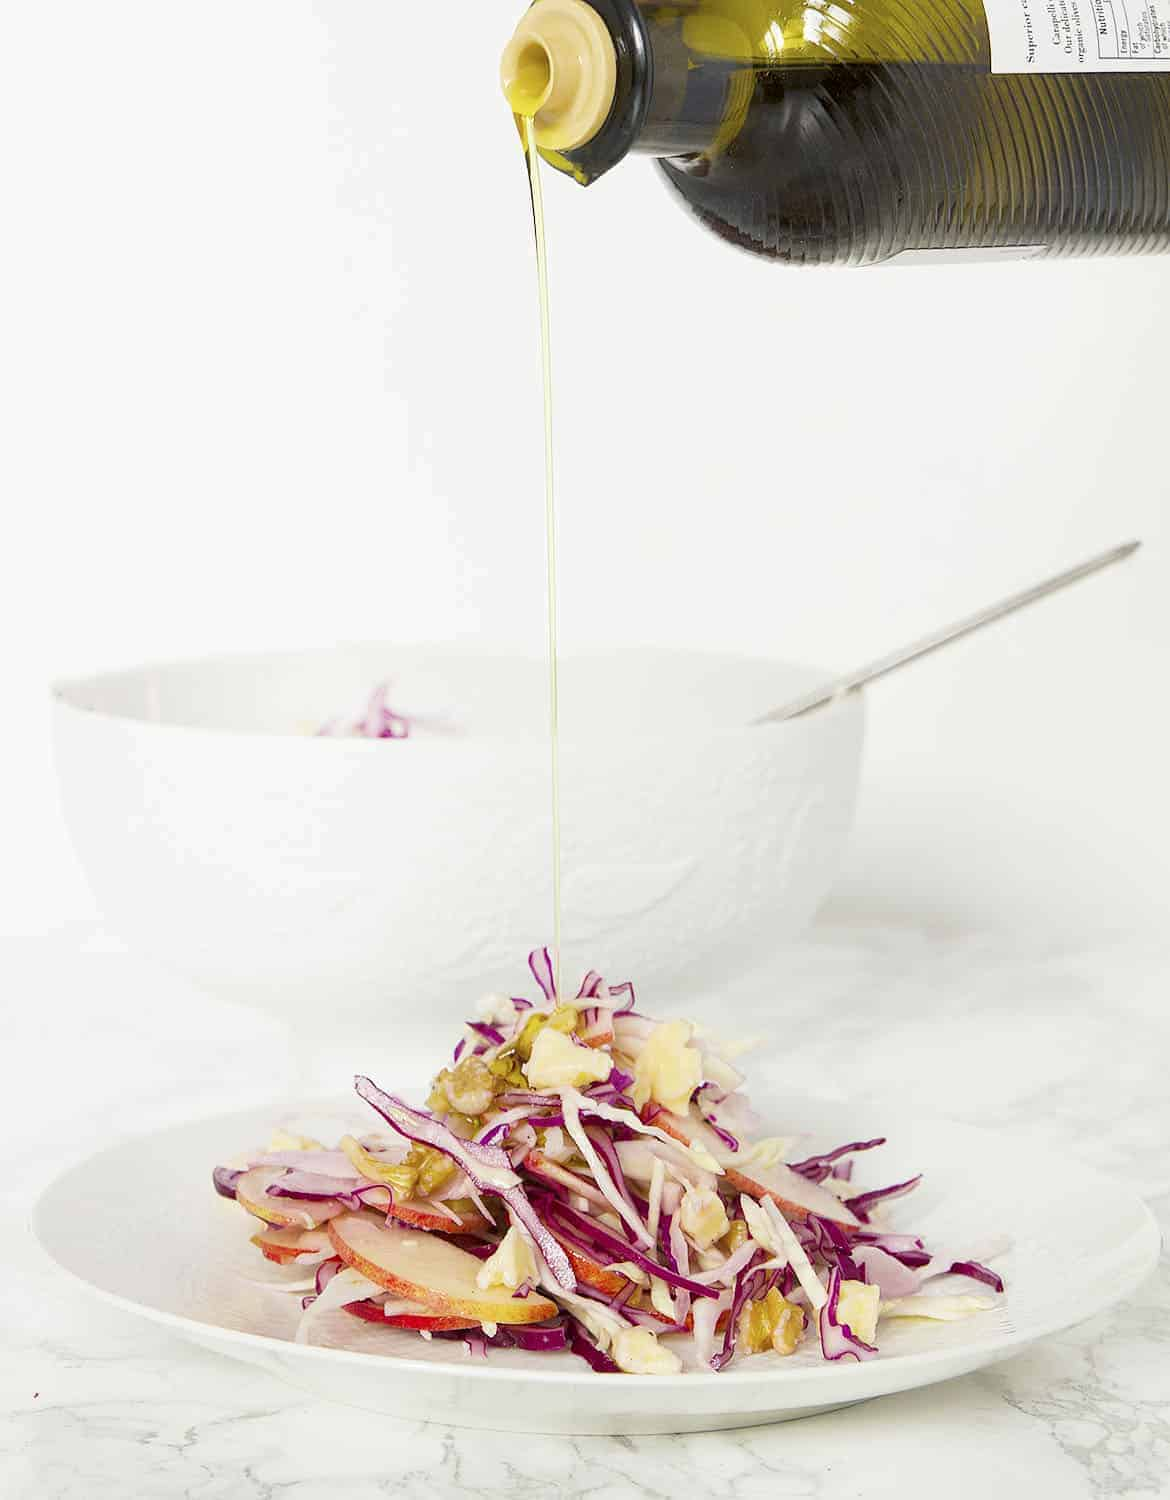 A bottle pouring olive oil over a serving of cabbage salad over a white background.